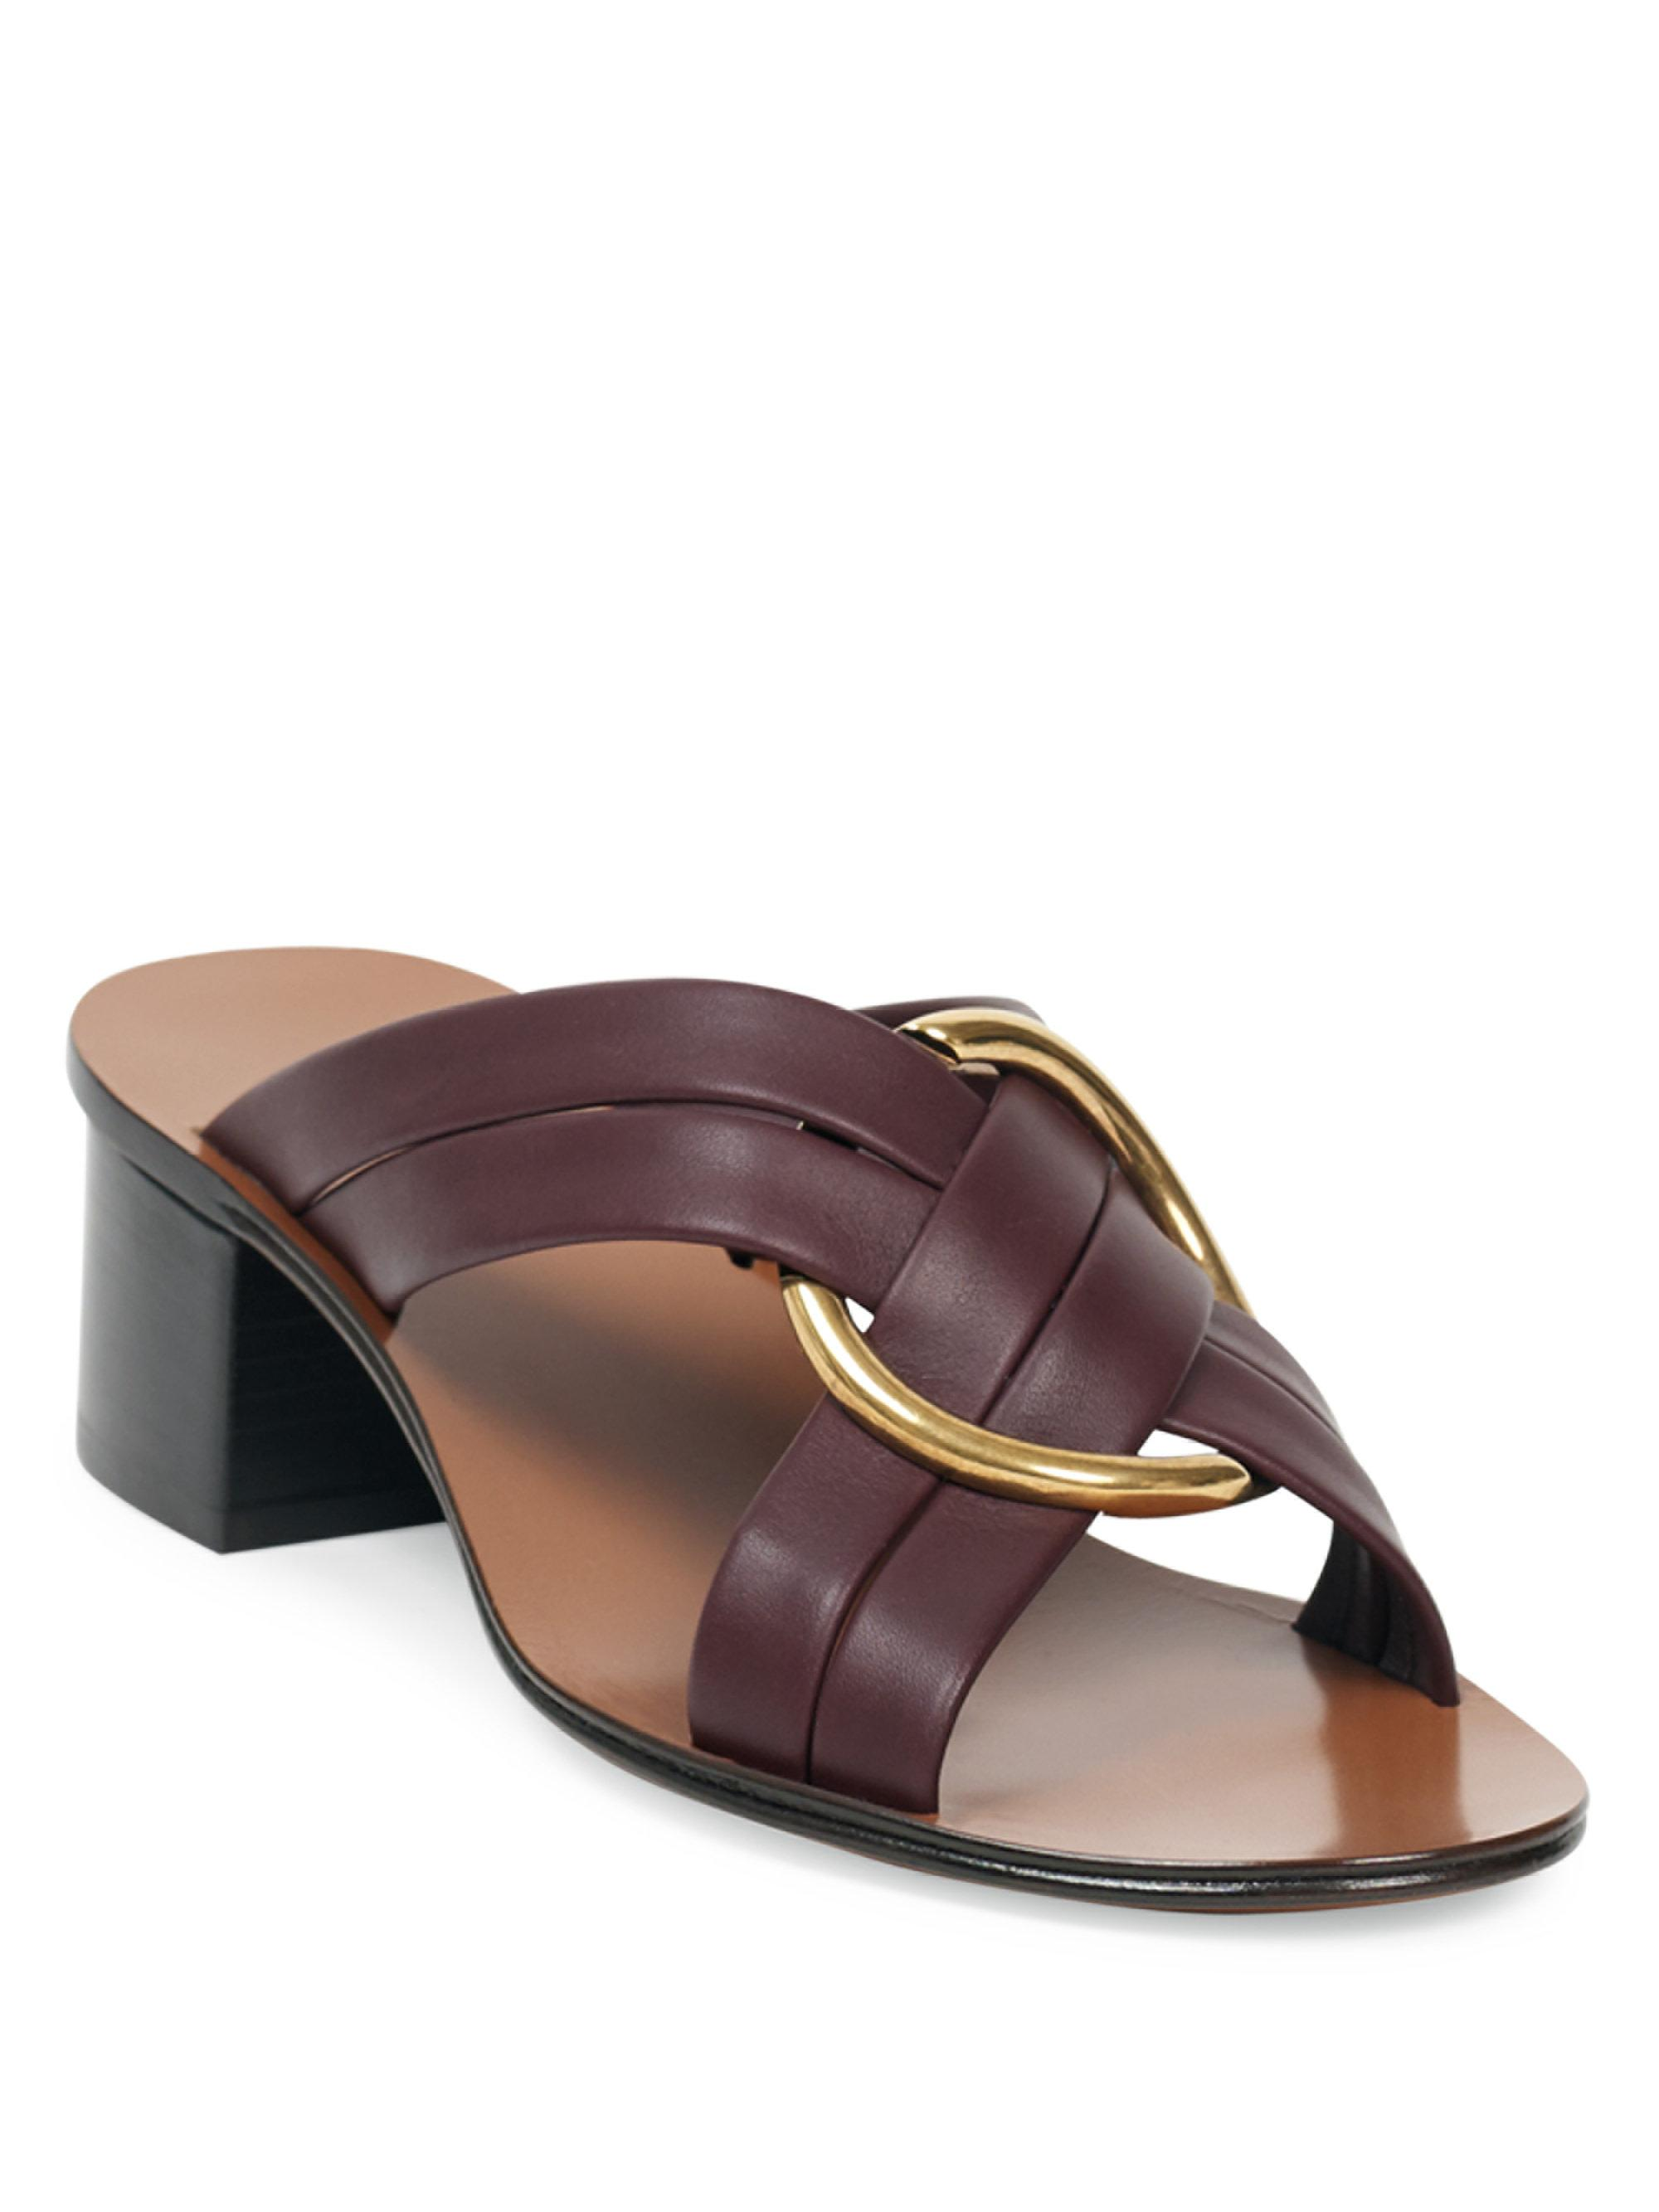 Rony leather sandals Chlo</ototo></div>                                   <span></span>                               </div>             <div>                                     <div>                                             <div>                                                     <div>                                                             <a href=